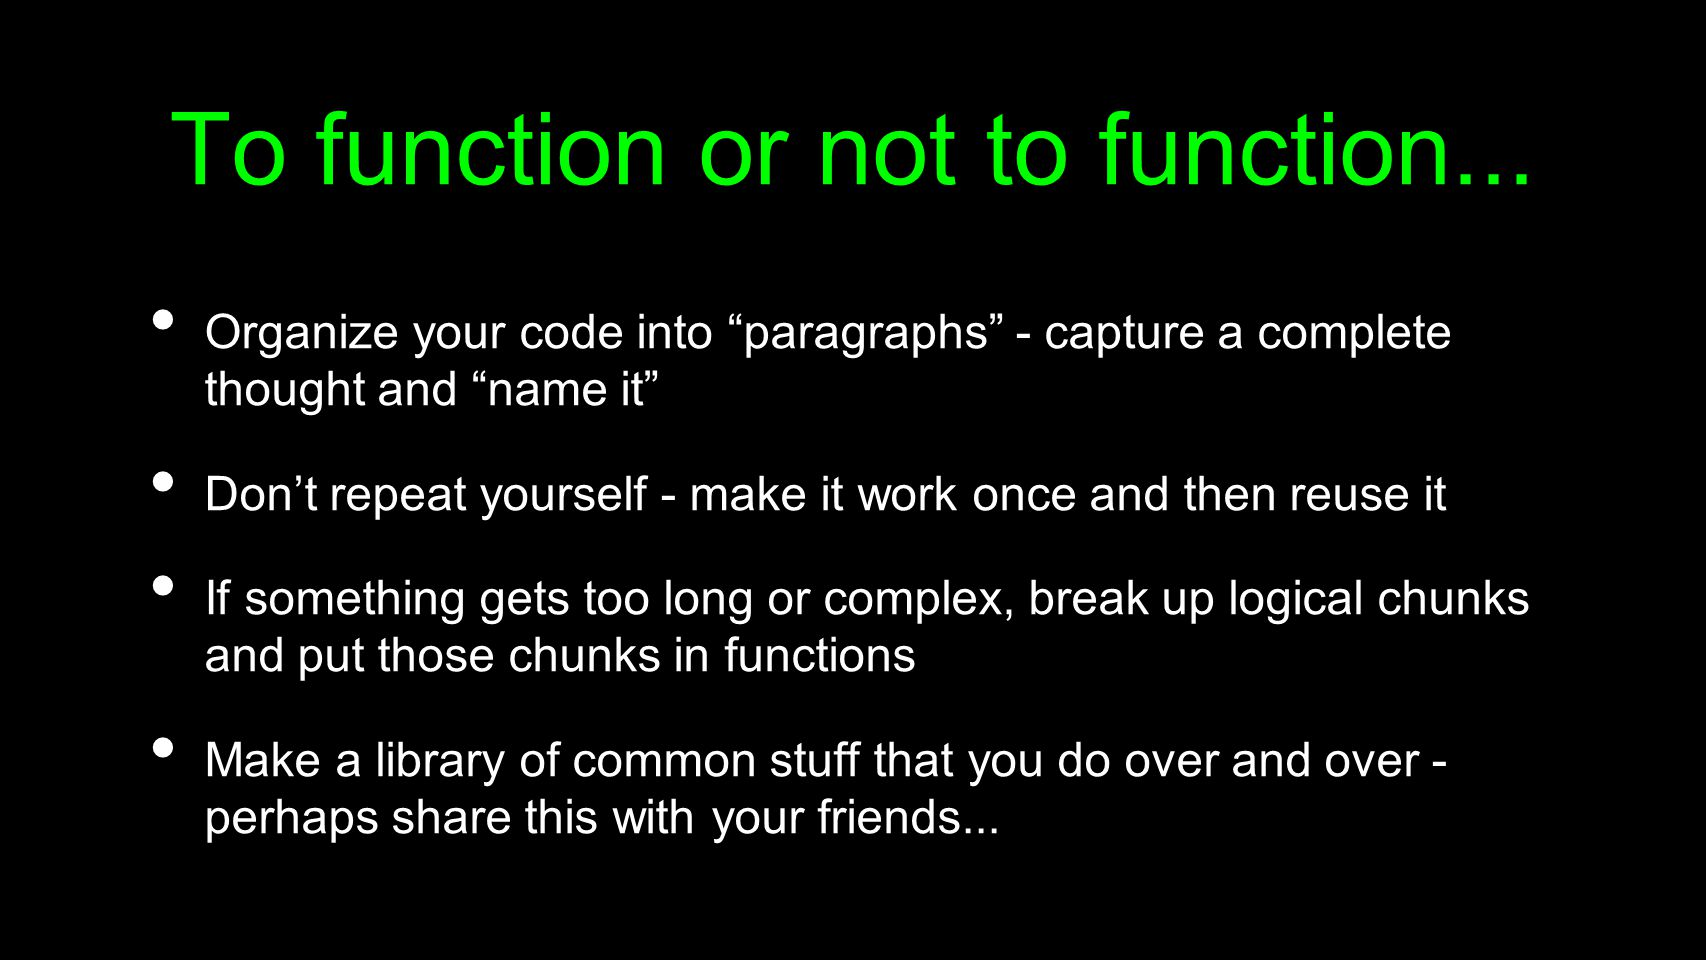 """To function or not to function... Organize your code into """"paragraphs"""" - capture a complete thought and """"name it"""" Don't repeat yourself - make it work"""